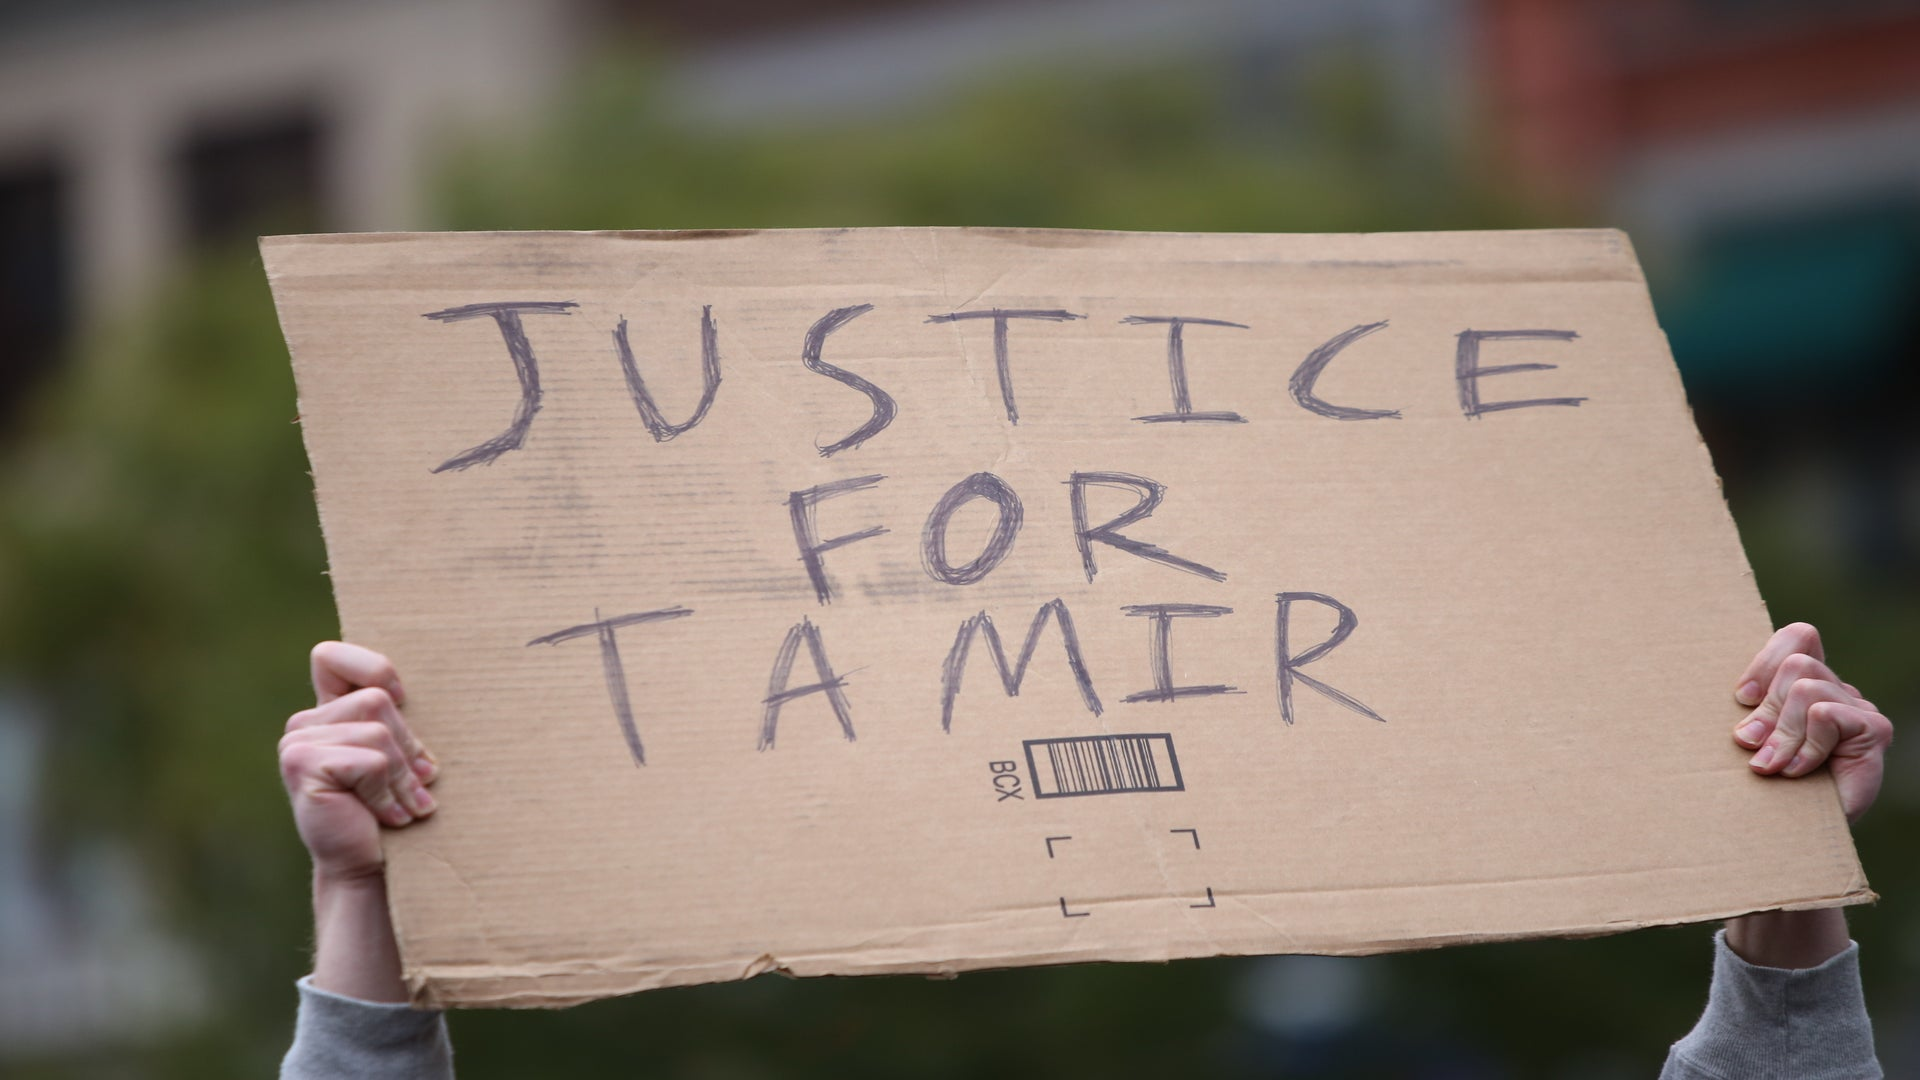 The 911- Dispatcher Who Took Call About Tamir Rice Faces Disciplinary Charges